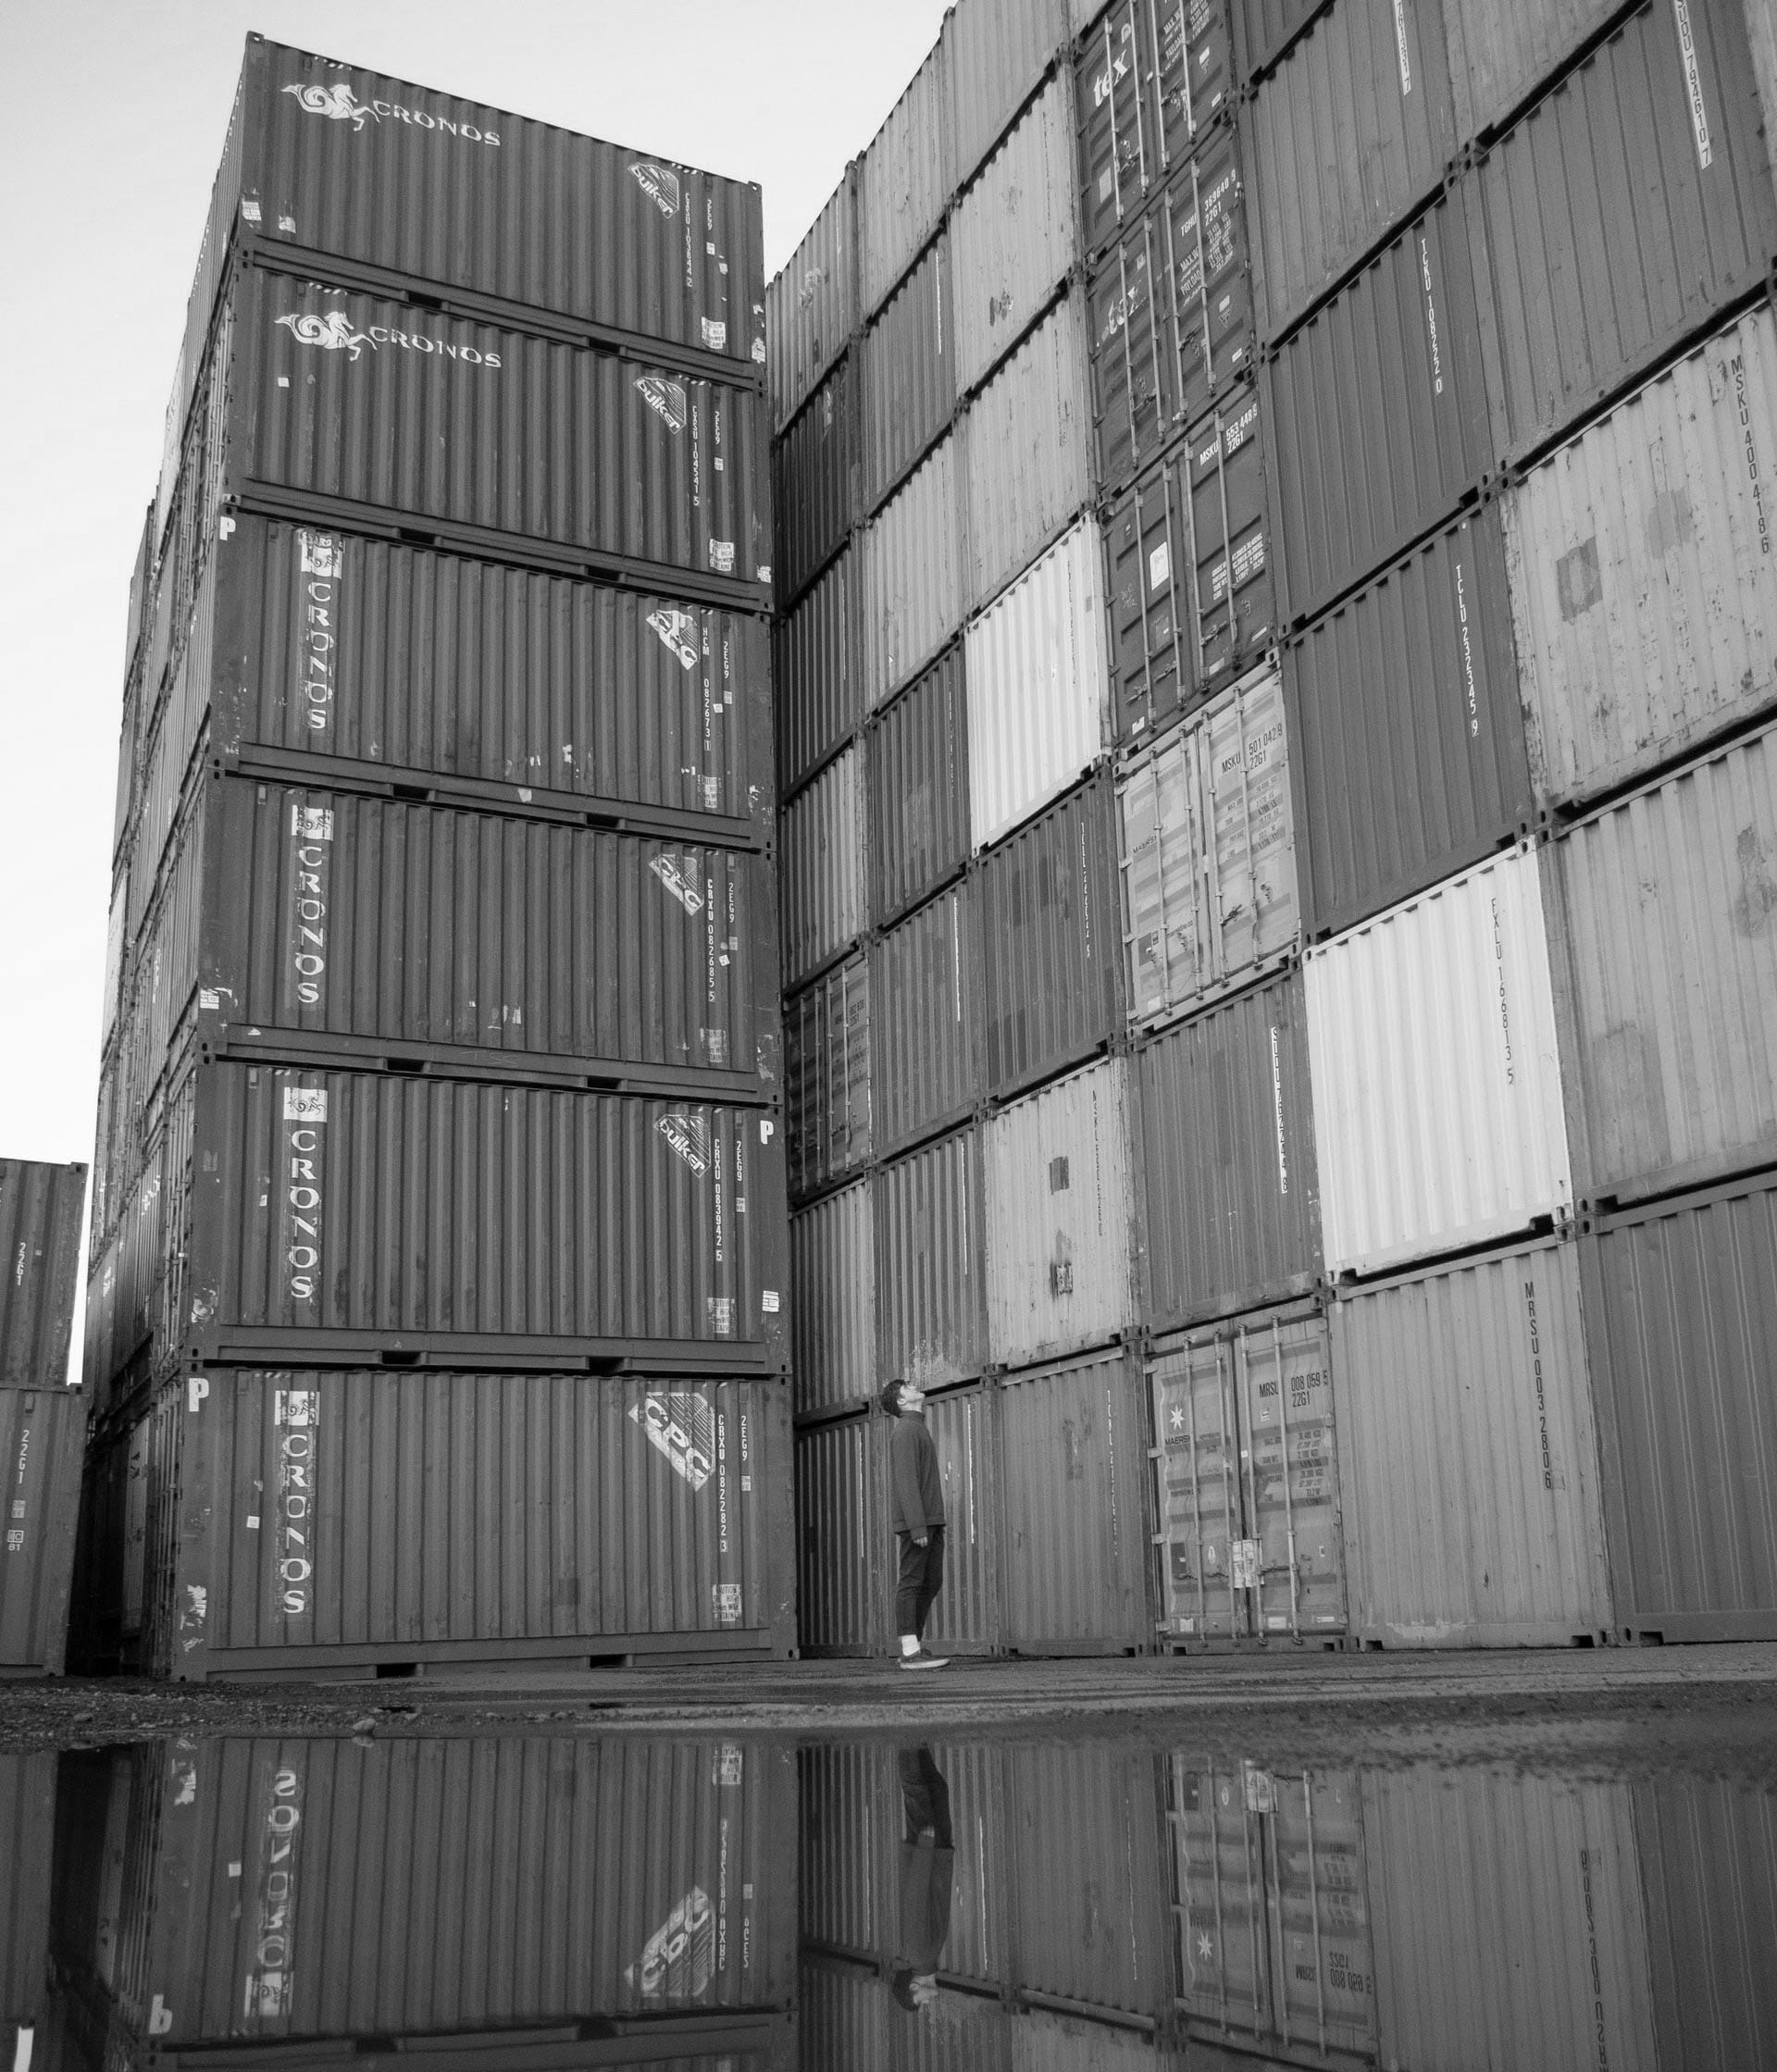 Person watching containers image